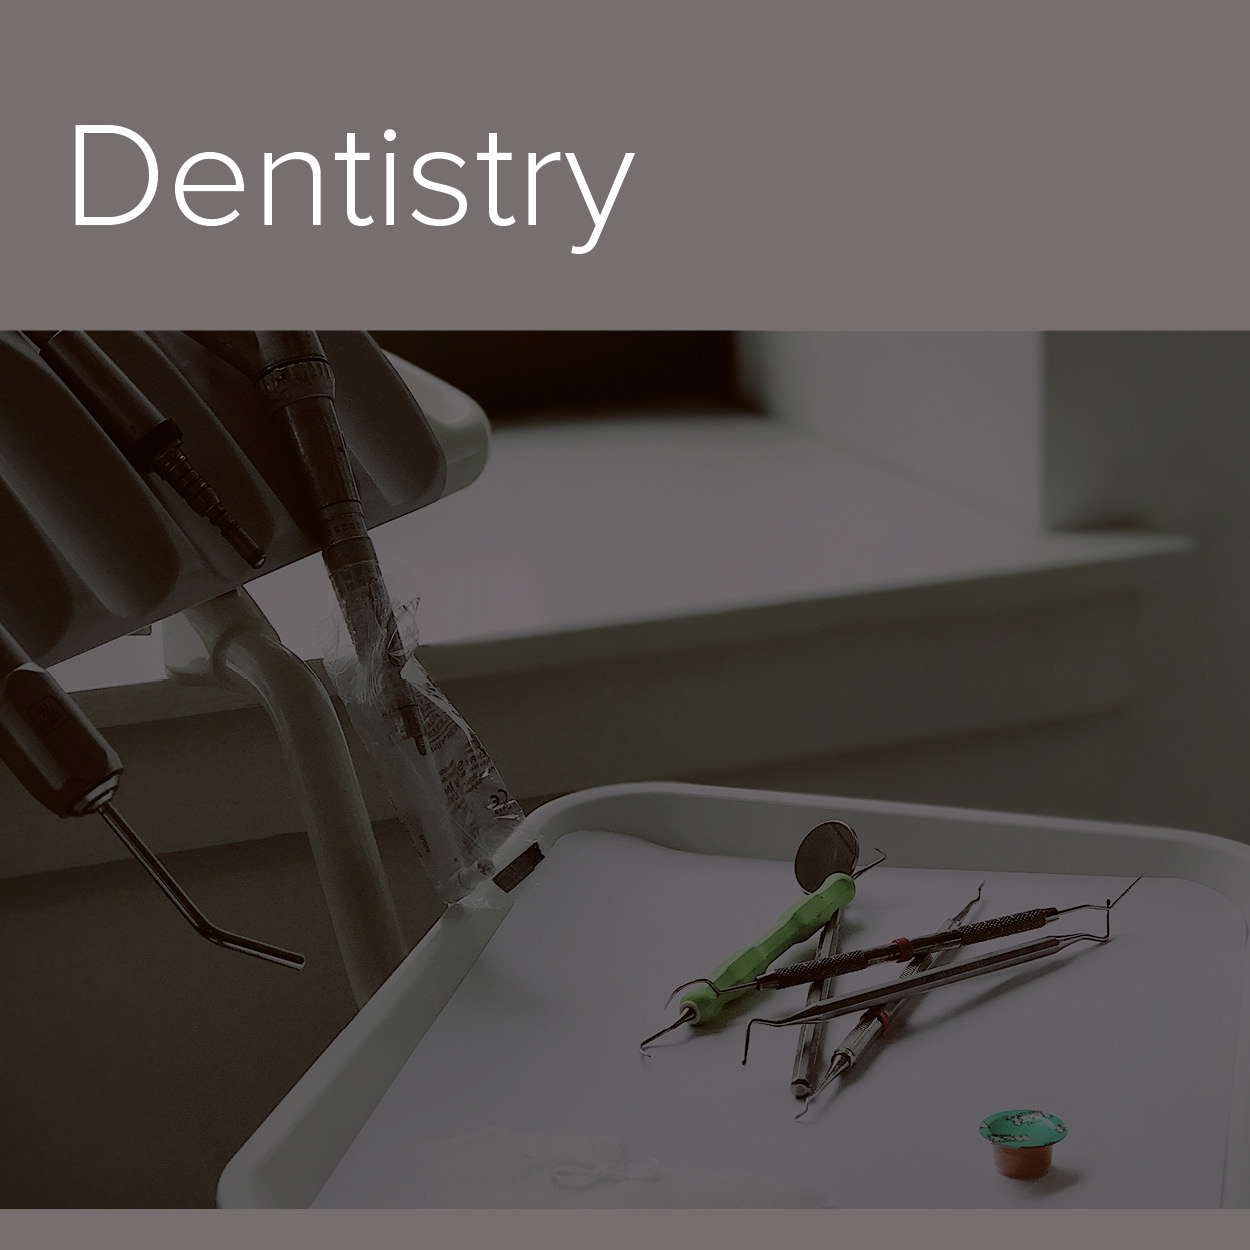 A decorative image of the Dentistry industry in which Alphasonics cater to.